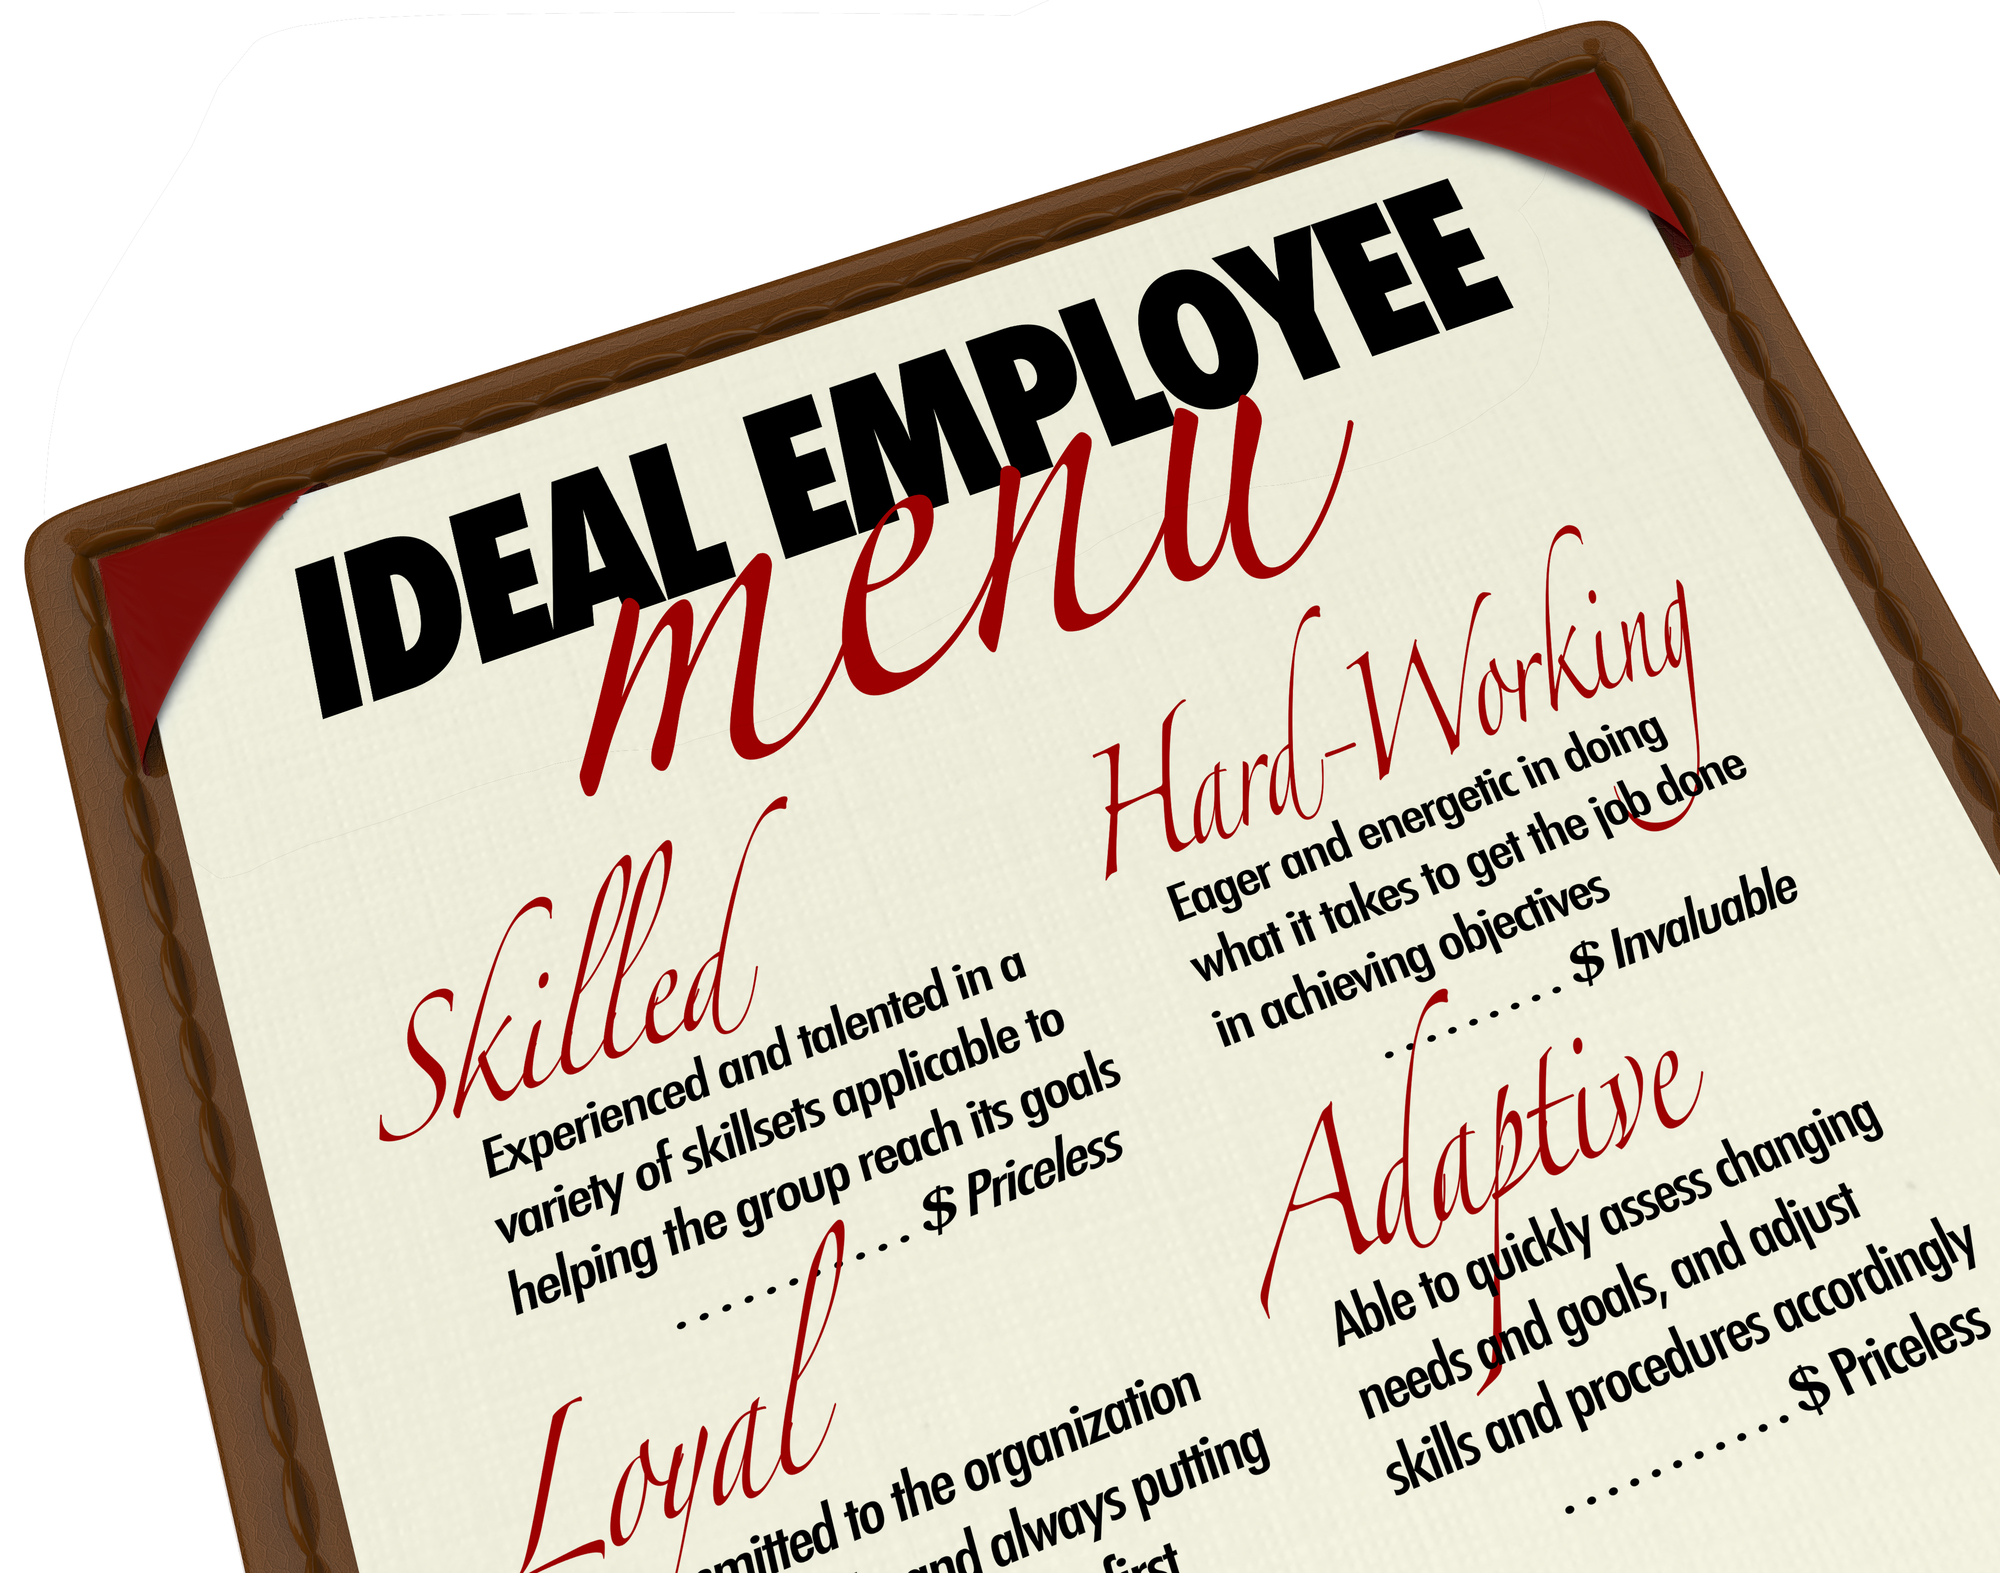 """A leatherbound menu reading """"Ideal Employee Menu"""" with items listed as """"Skilled,"""" """"Hard-working,"""" """"loyal,"""" and """"adaptive."""""""